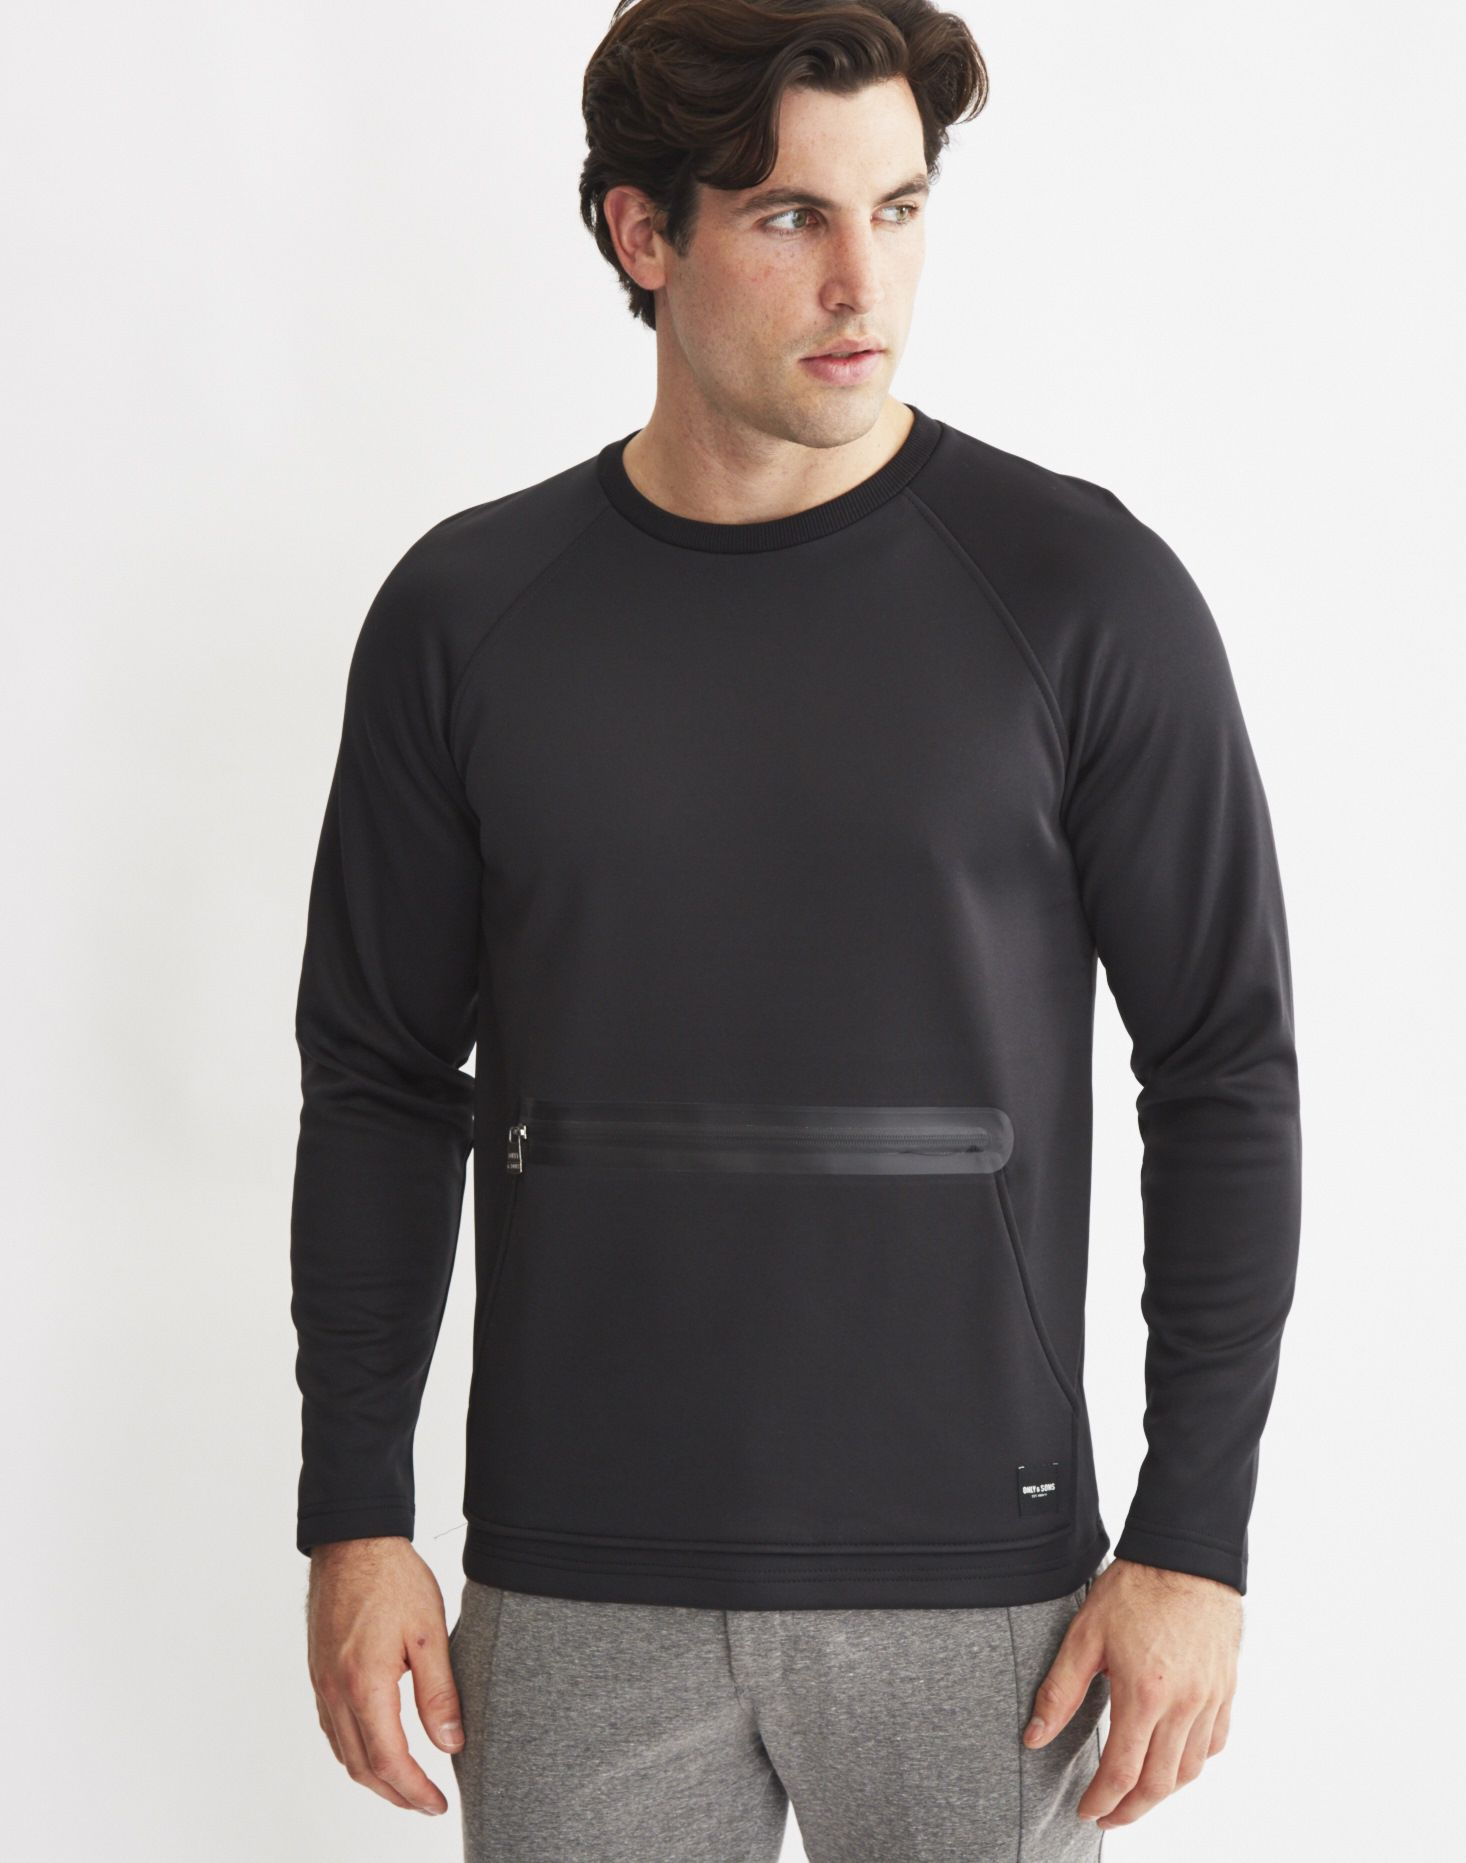 a7a47bb1 Buy Only & Sons Mens Scuba Sweatshirt With Kangaroo Zip Pocket Black,  starting at £14. Similar products also available. SALE now on!